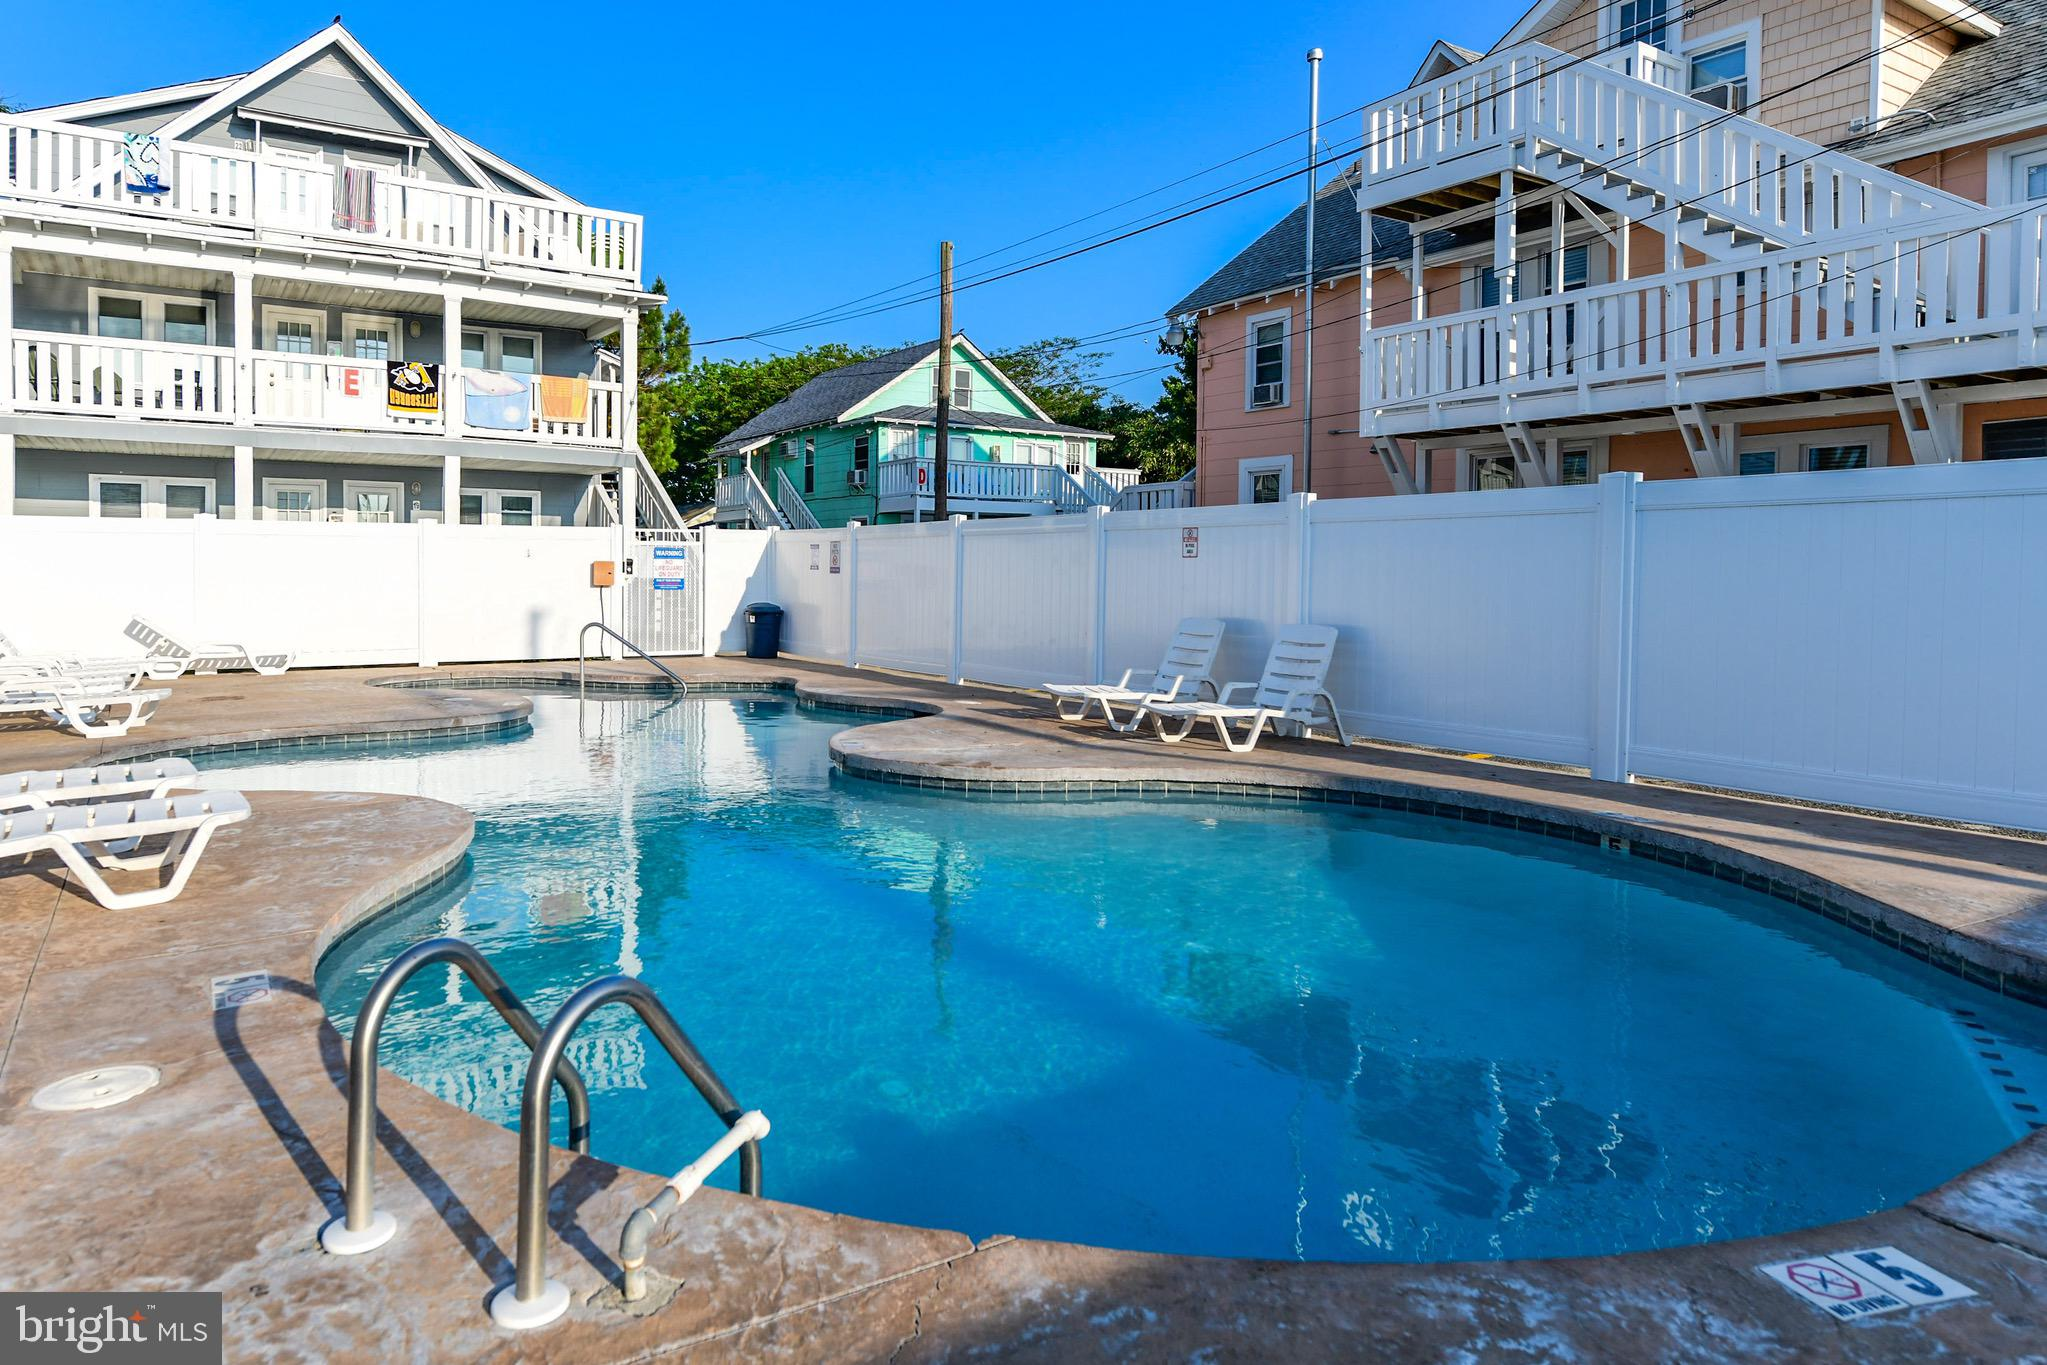 Cute Beach Cottage, 3rd Floor Unit, Pool, Sliver of a  Ocean and Boardwalk view Rear Deck, One Bedroom and 1 Full Bath, Combo Living Room and Kitchen, Rear and Side Entrance, Parking, Very Affordable Beach Getaway Spot, Located on the Top Floor, 2 Blocks to Beach and Boardwalk, Close Ocean City Ball Fields, Play Ground, Skate Park, Bayside Boardwalk. Best Buy in Ocean City !!! Condo Fee includes Cable TV